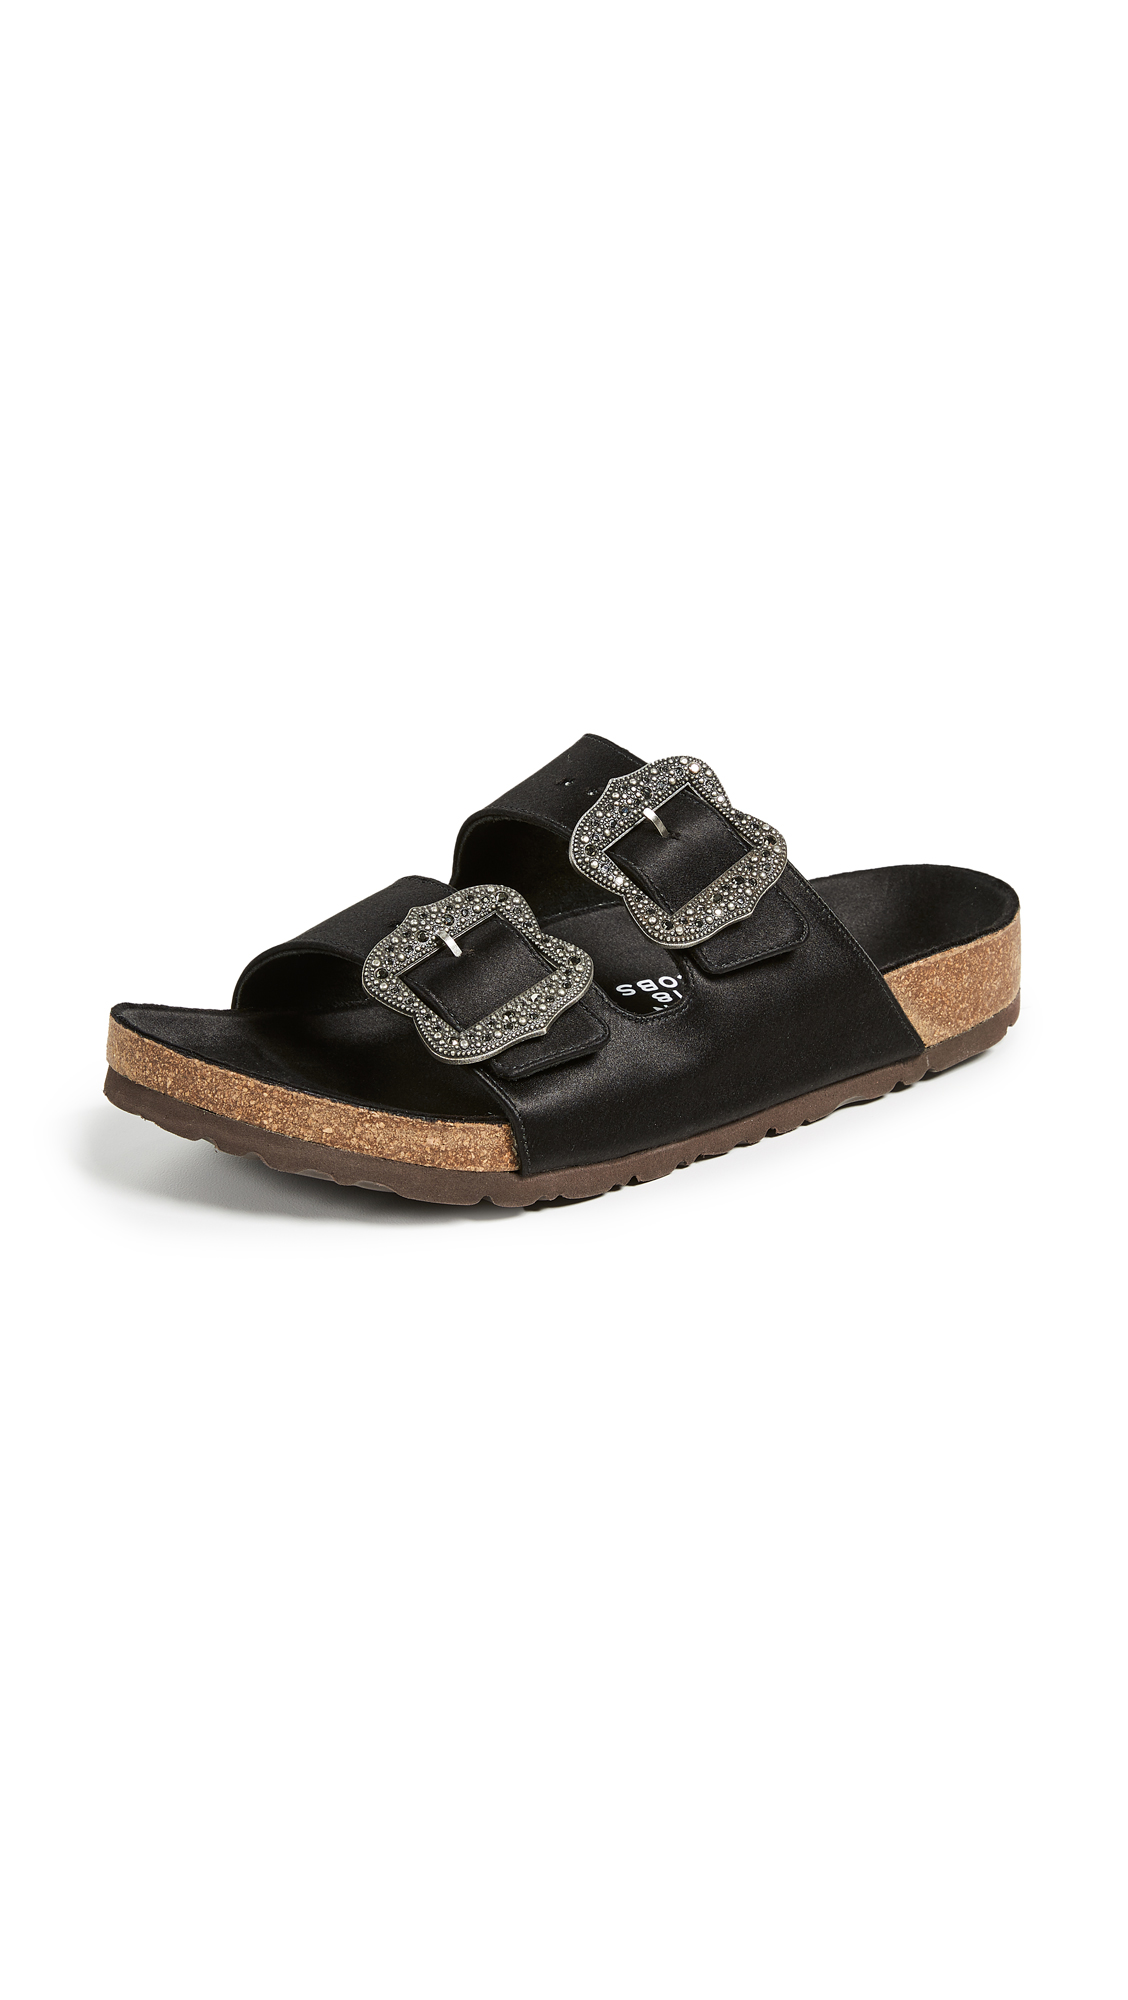 Leather Buckle Slide Sandals - Black Size 6